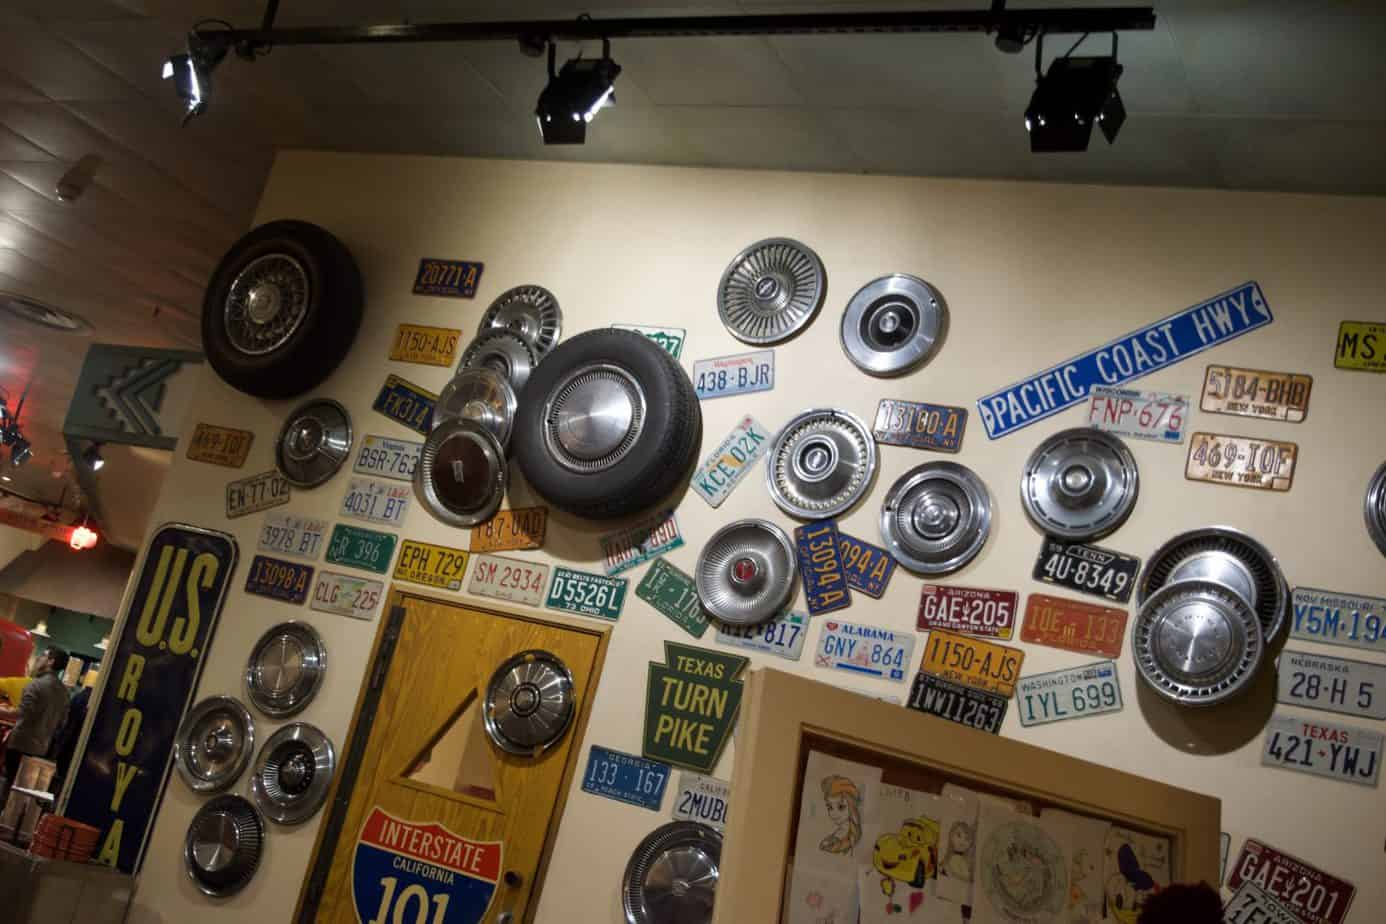 The interior of the hotels onsite restaurant La cantina at Disneys Sante Fe Hotel showing all tyres on the wall